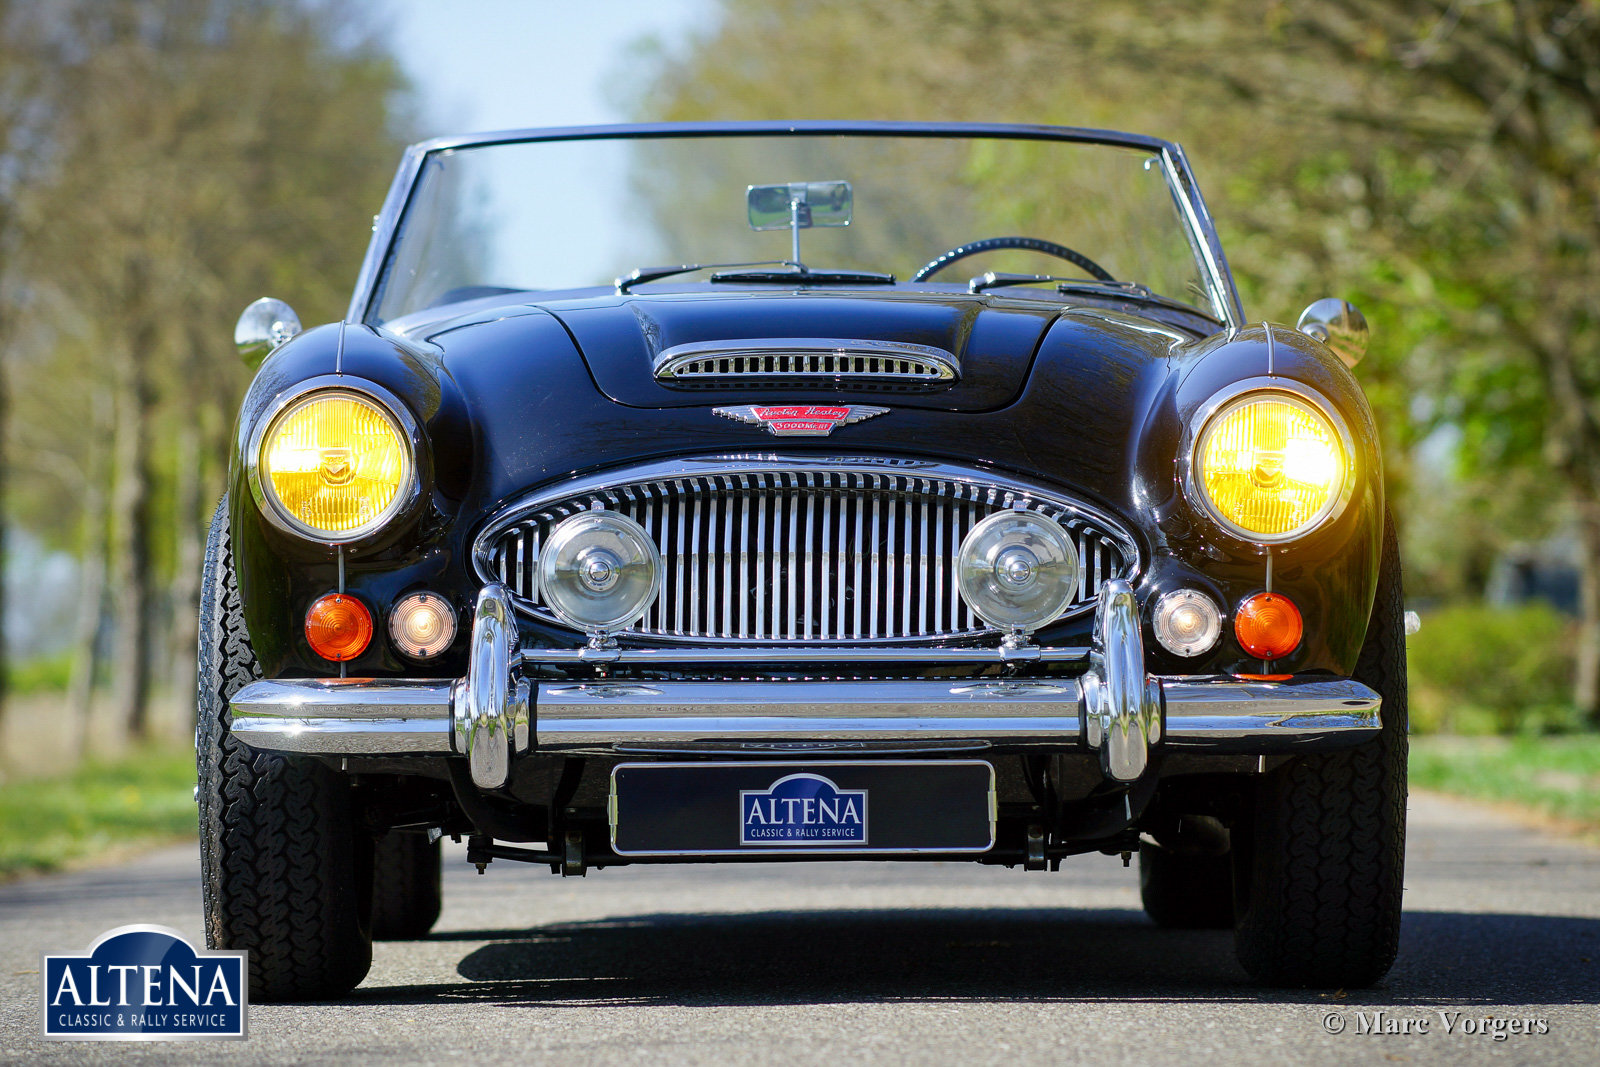 Austin Healey 3000 MK III, 1967 For Sale (picture 2 of 6)